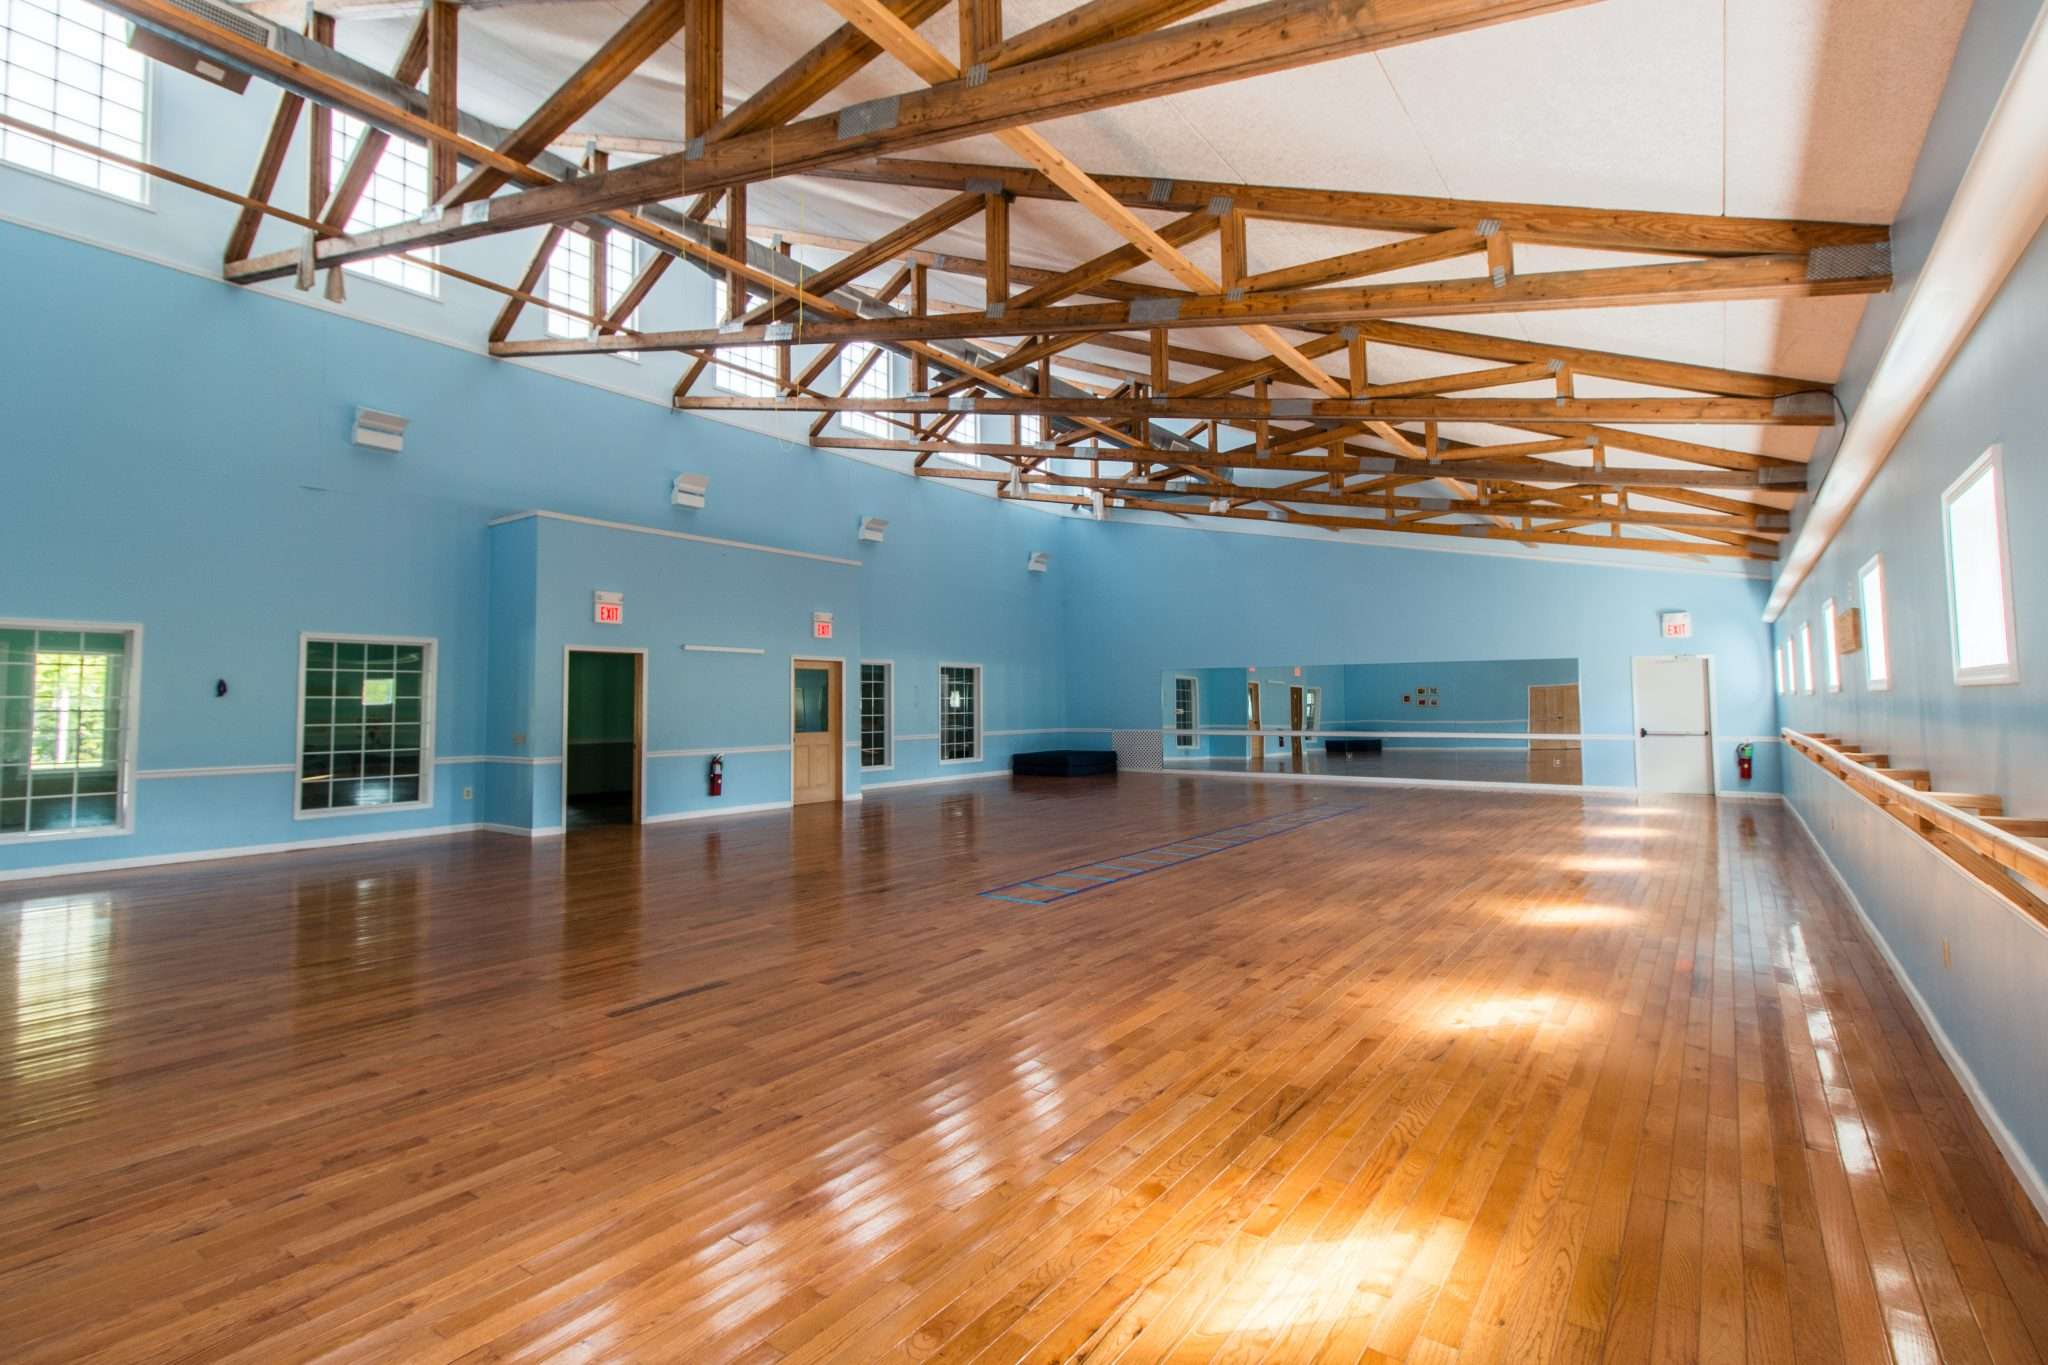 Photo of the dance studio empty